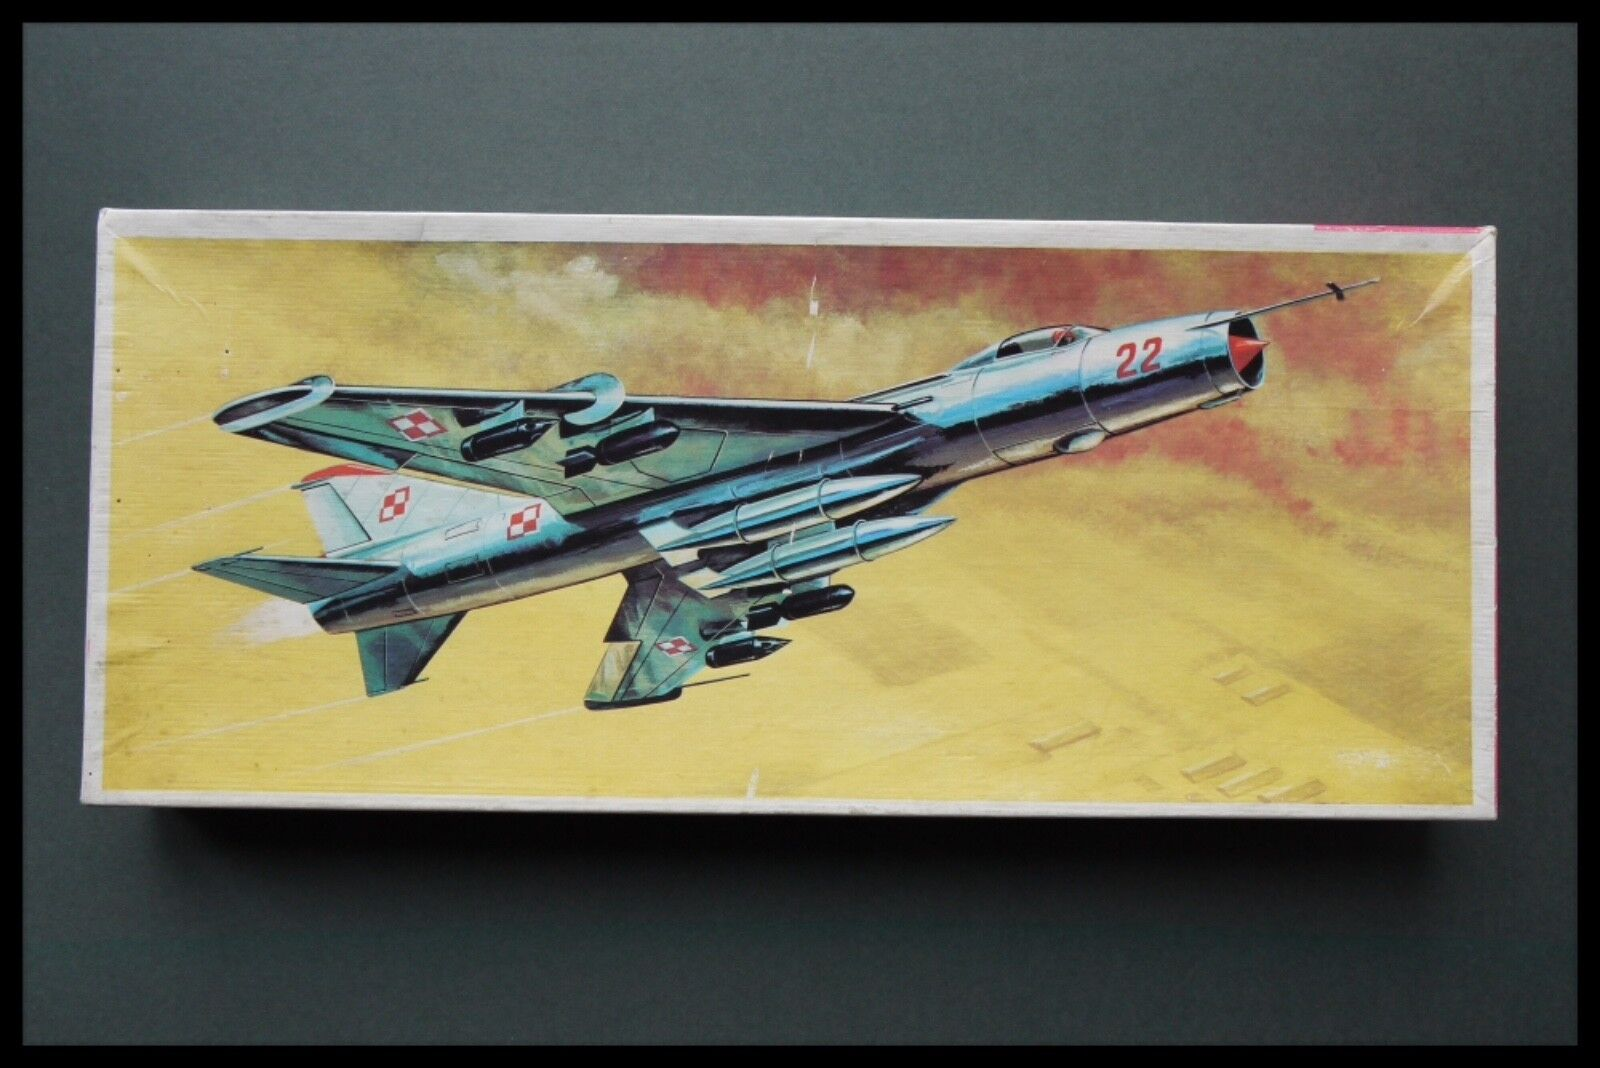 VEB PLASTICART SU-7 1 72 Scale Model Kit Box Made In GDR